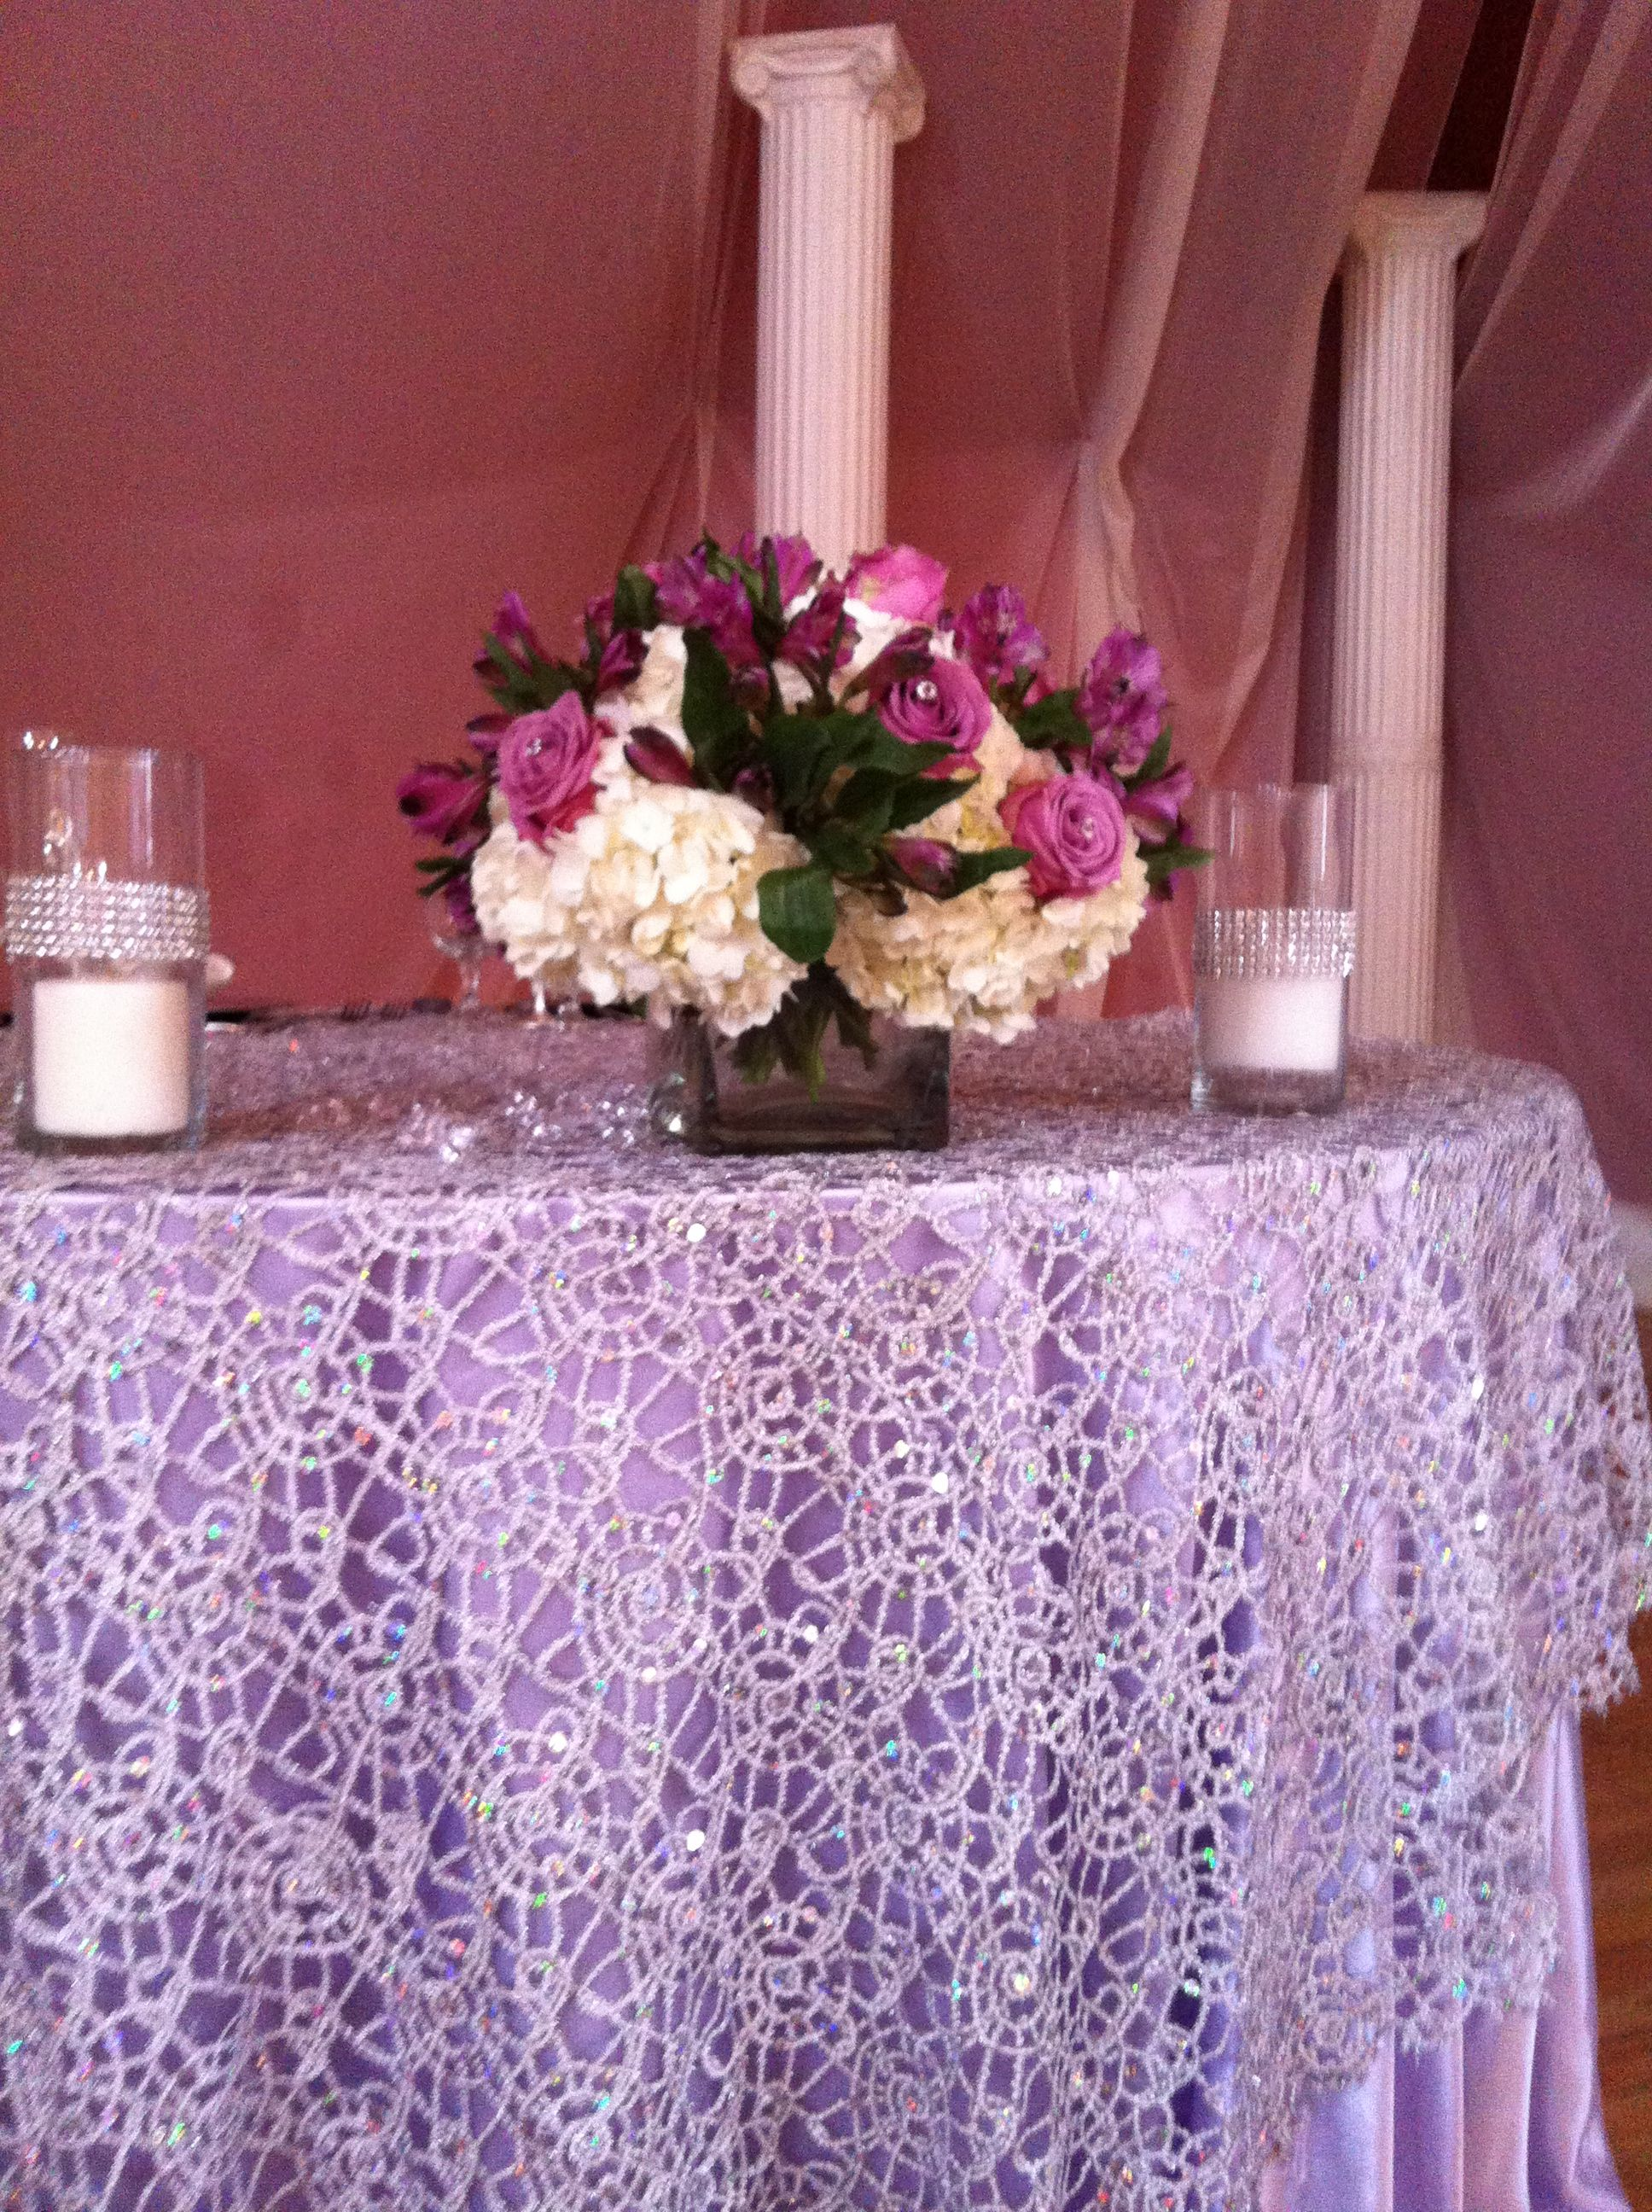 Chemical Lace Silver Overlay Over Satin Lavender Tablecloths Www